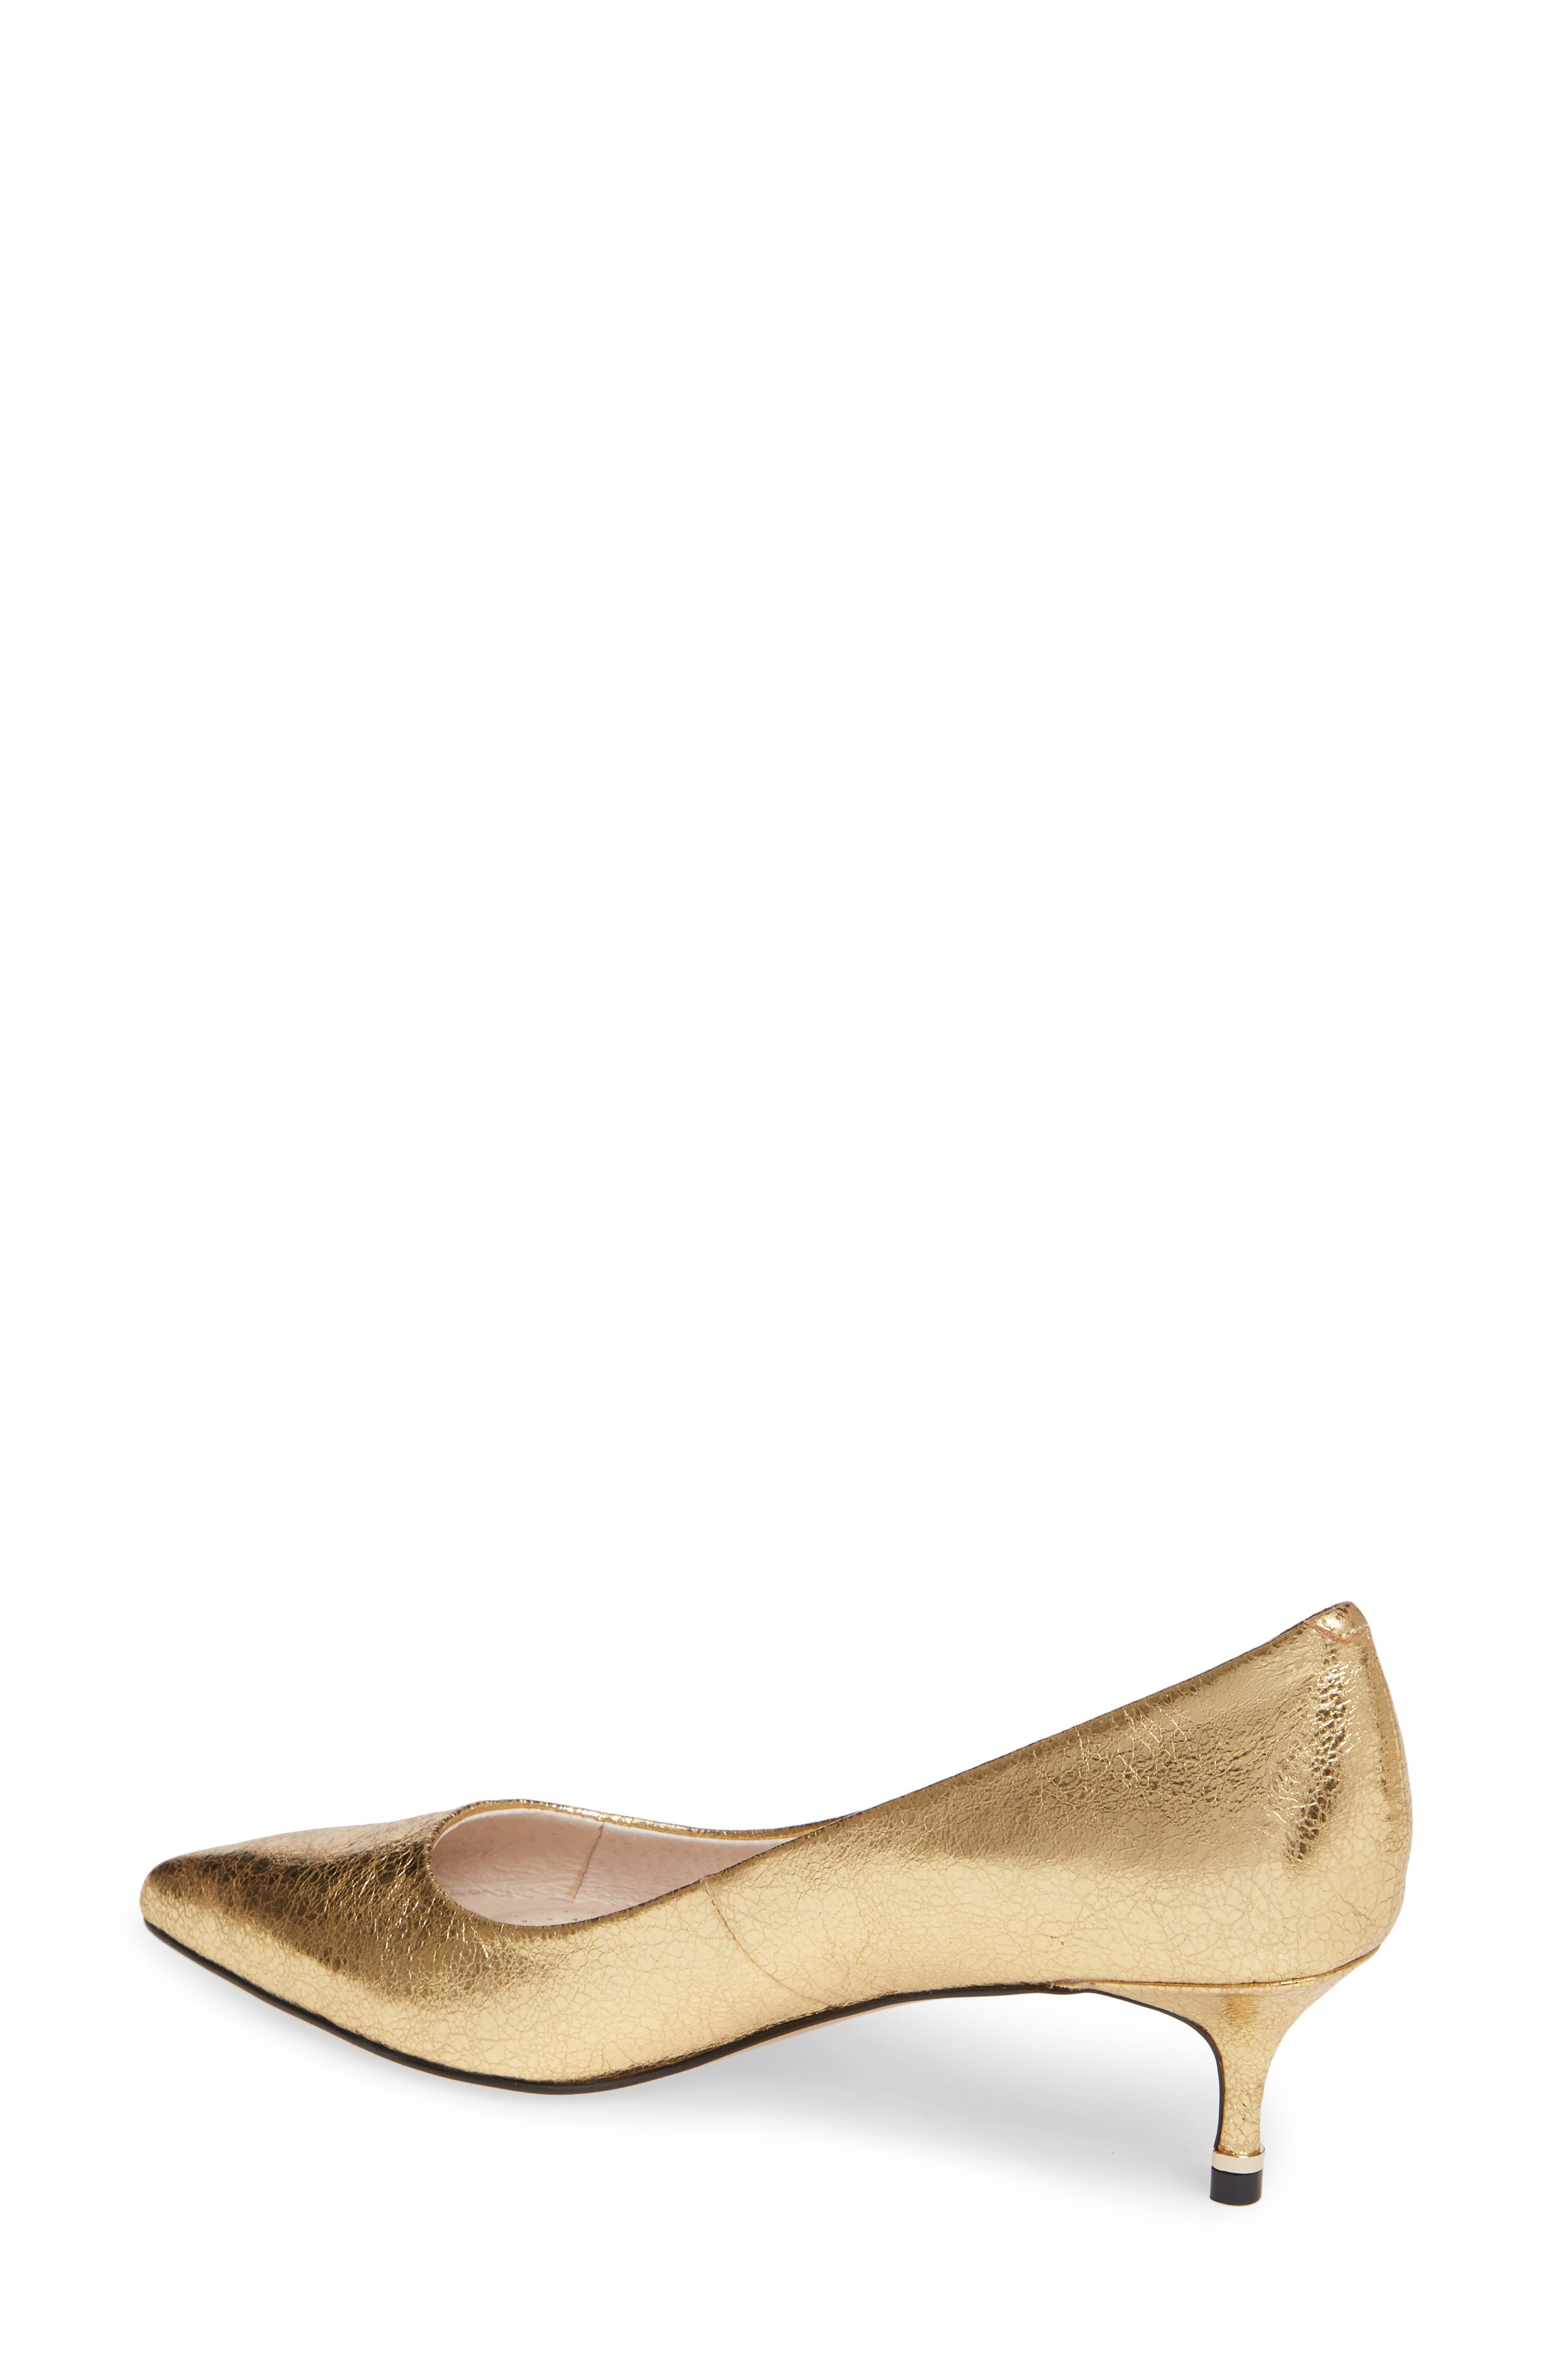 Riley 50 Pump,                             Alternate thumbnail 2, color,                             YELLOW GOLD LEATHER